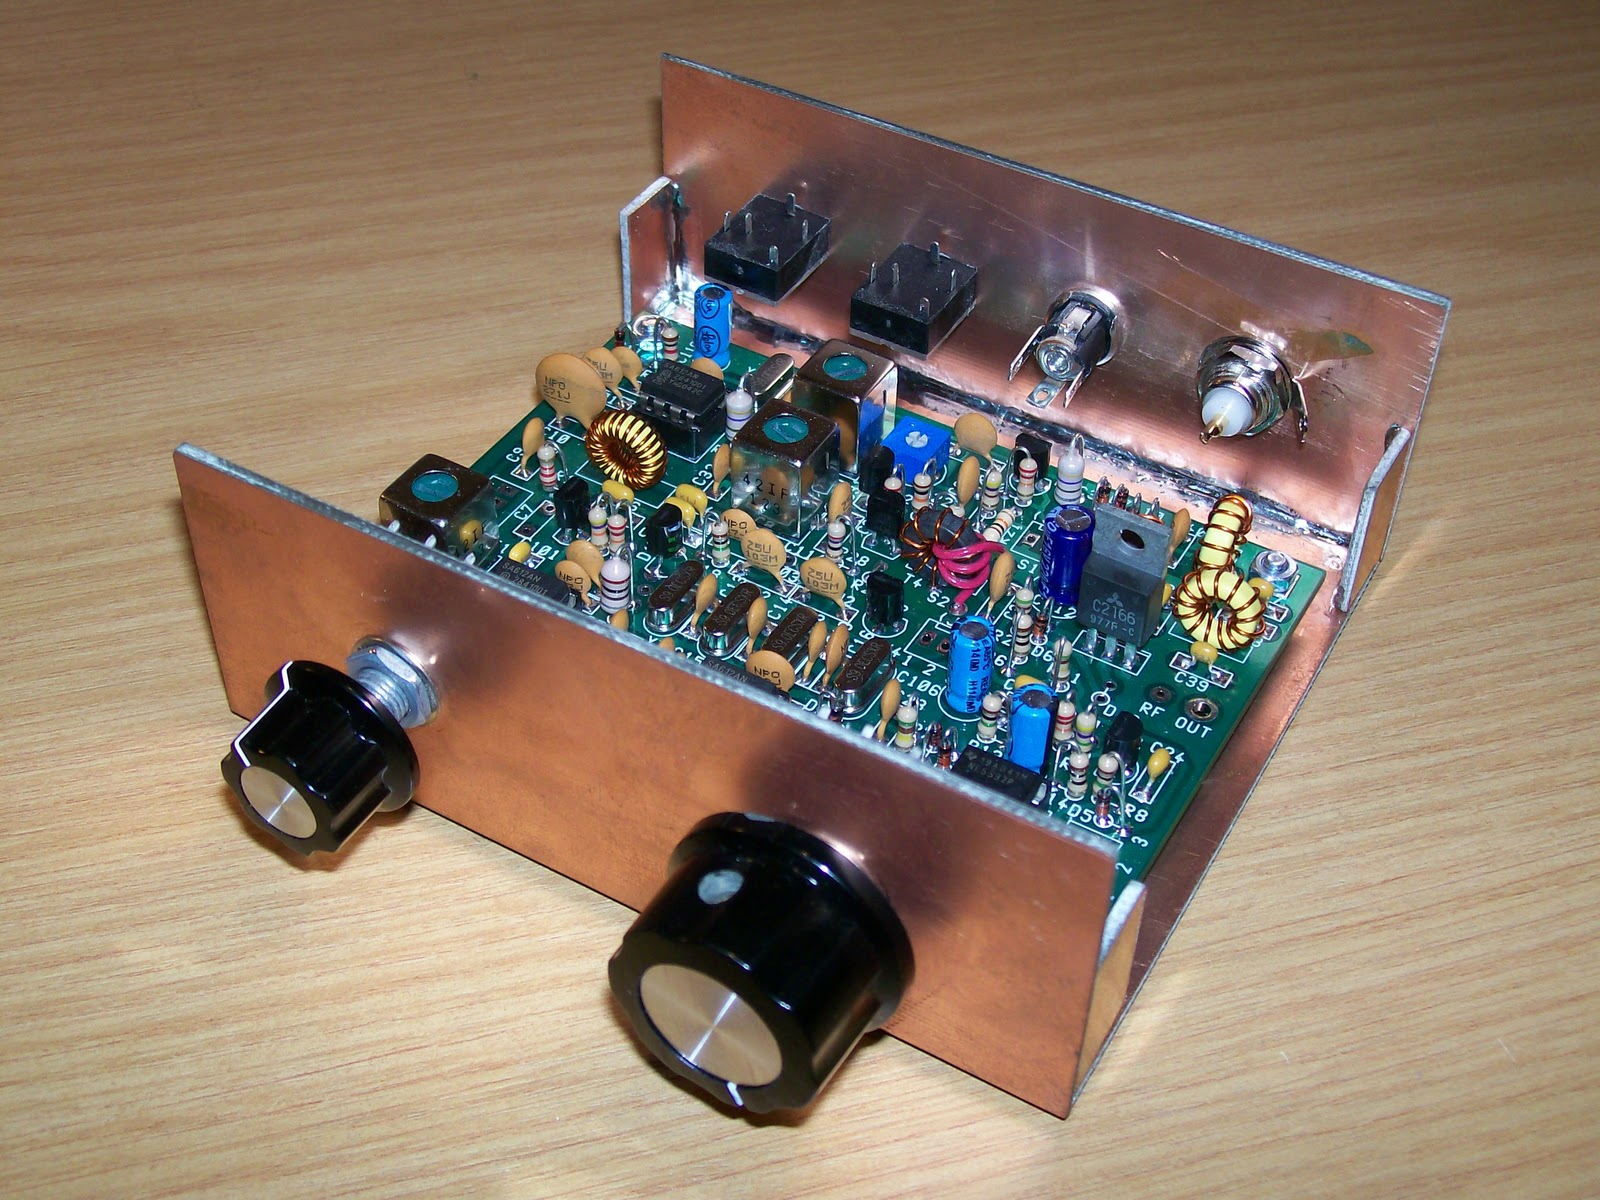 Colin M1BUU's radio stuff: Small Wonder Labs SW20+